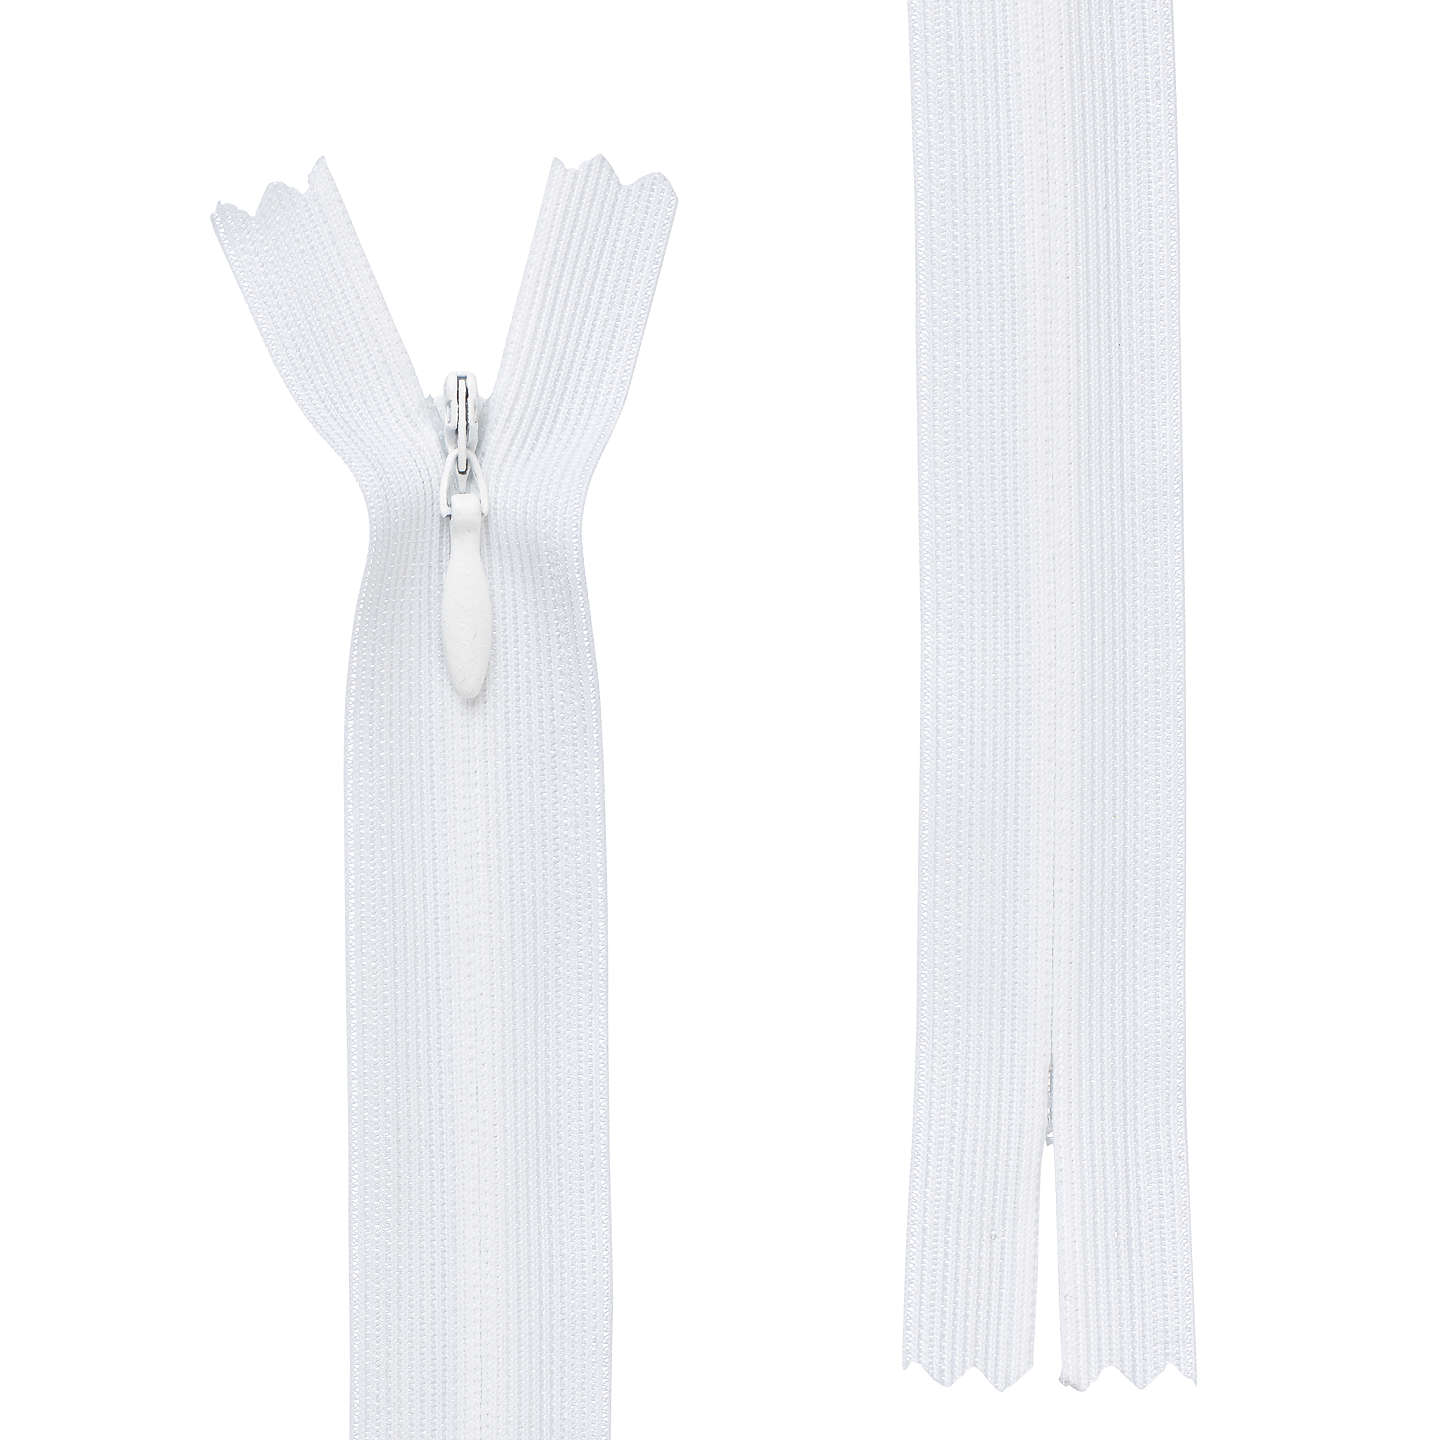 BuyOpti Closed End General Purpose Light Fabric Concealed Zip, White, 18cm Online at johnlewis.com